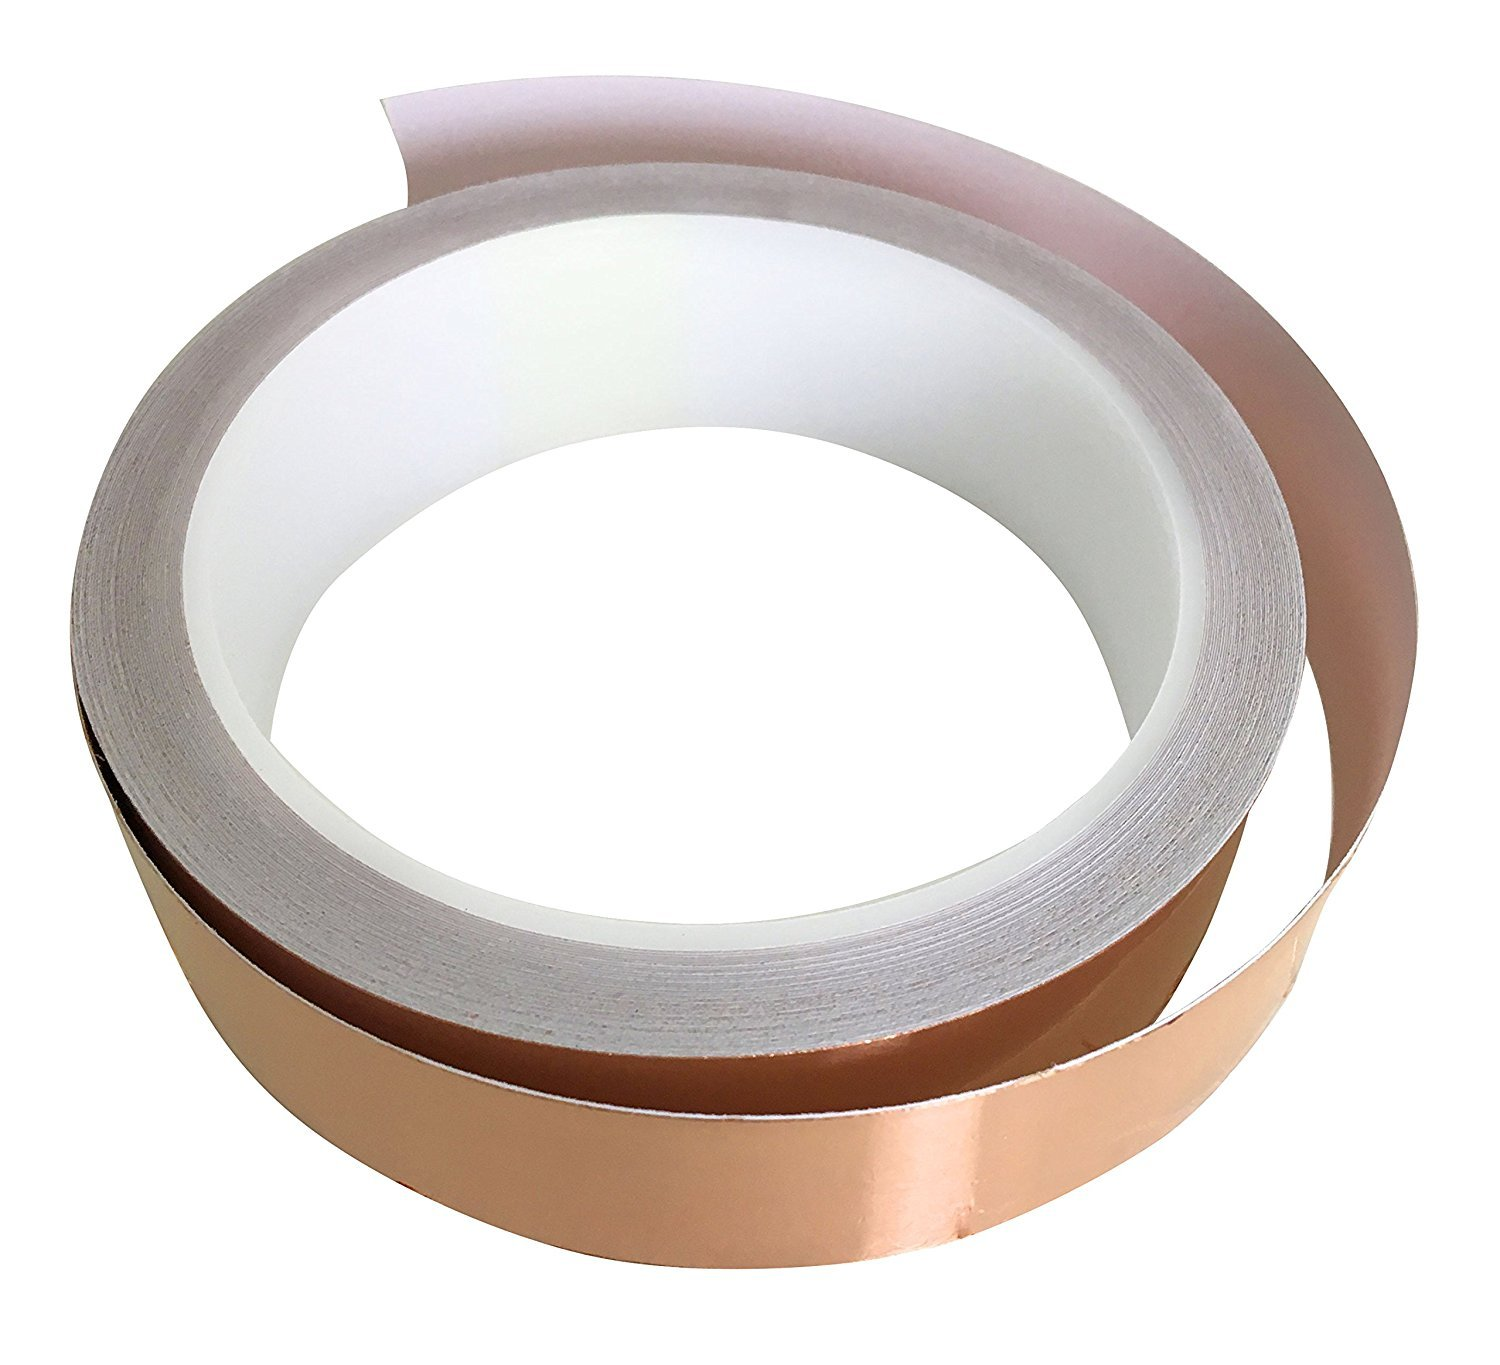 Patio Eden Copper Foil Conductive Adhesive Tape - 36 ft x 1 inch - Slug Deterrent and Snail Repellent, EMI Shielding, and Stained Glass